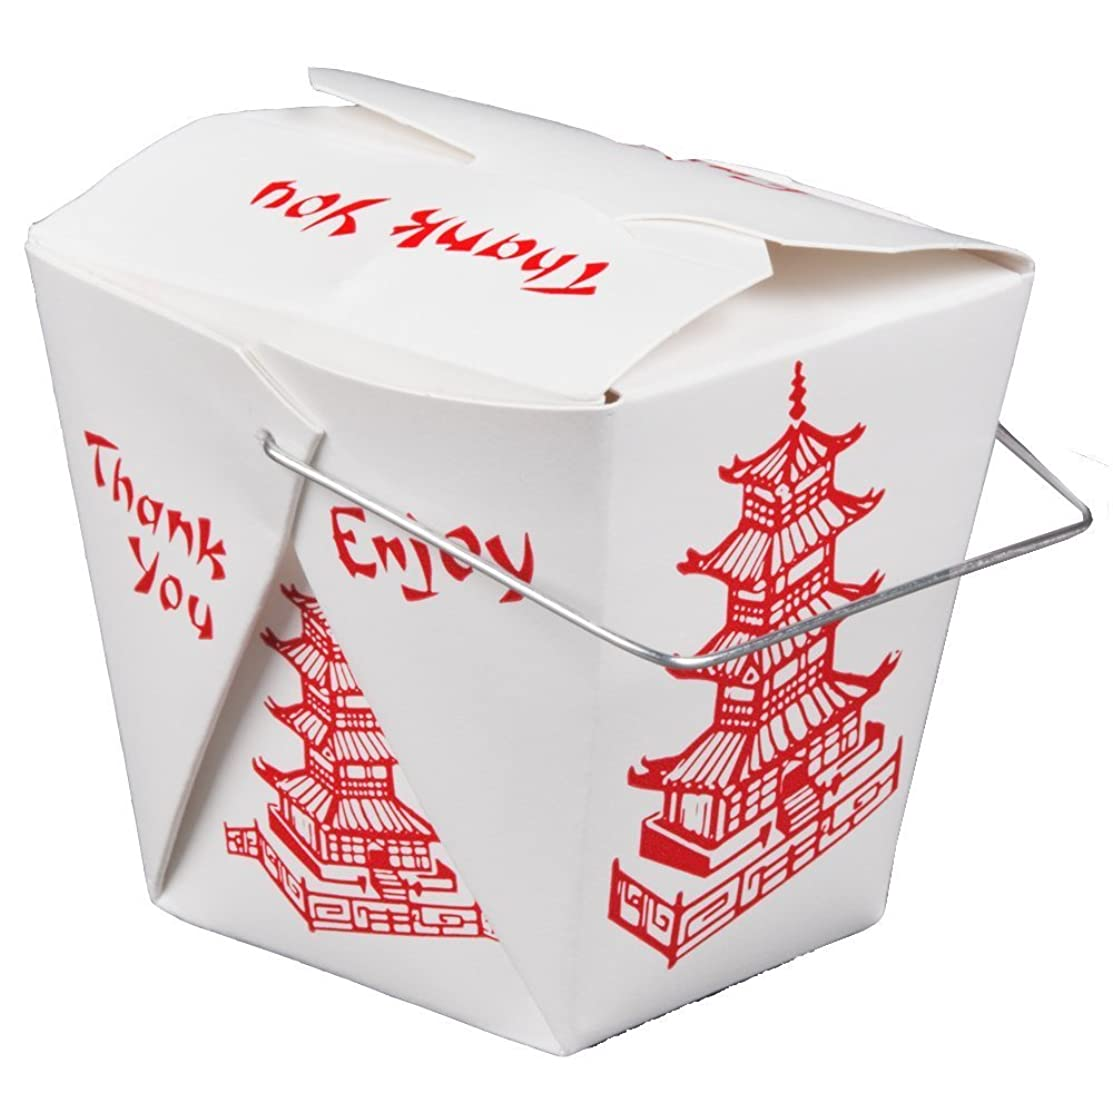 圧倒的変数困惑したChinese Take Out Boxes PAGODA 16 oz / Pint Size Party Favor and Food Pail by Fold Pak